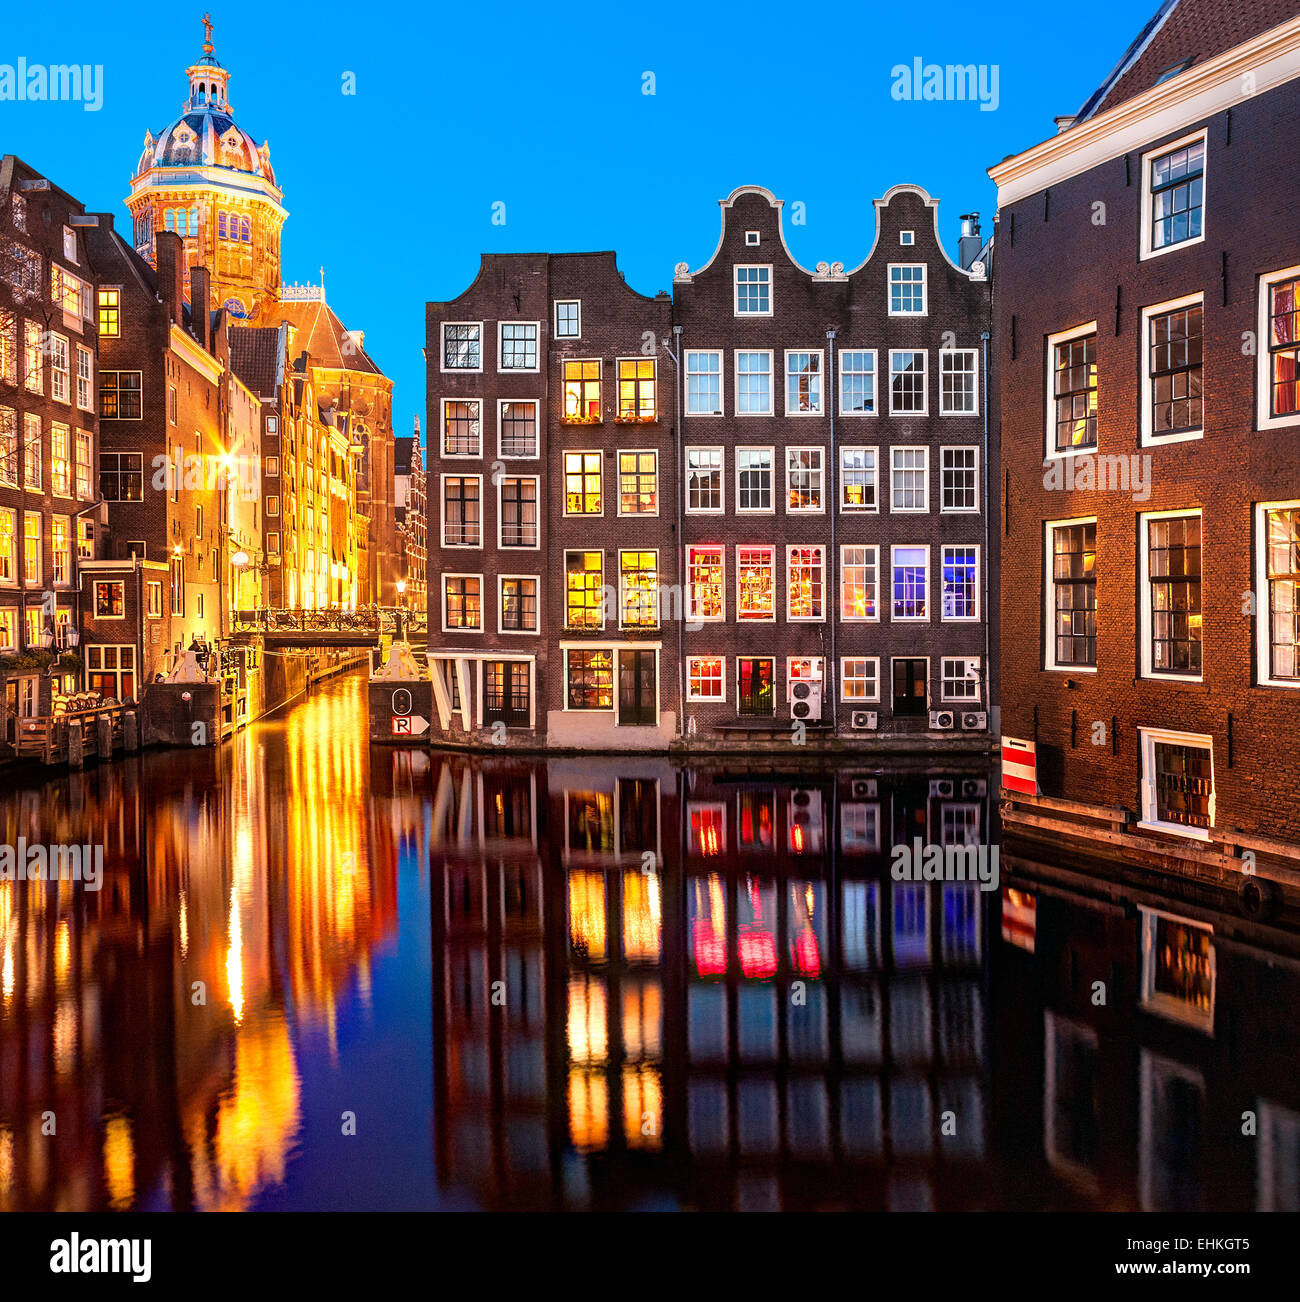 amsterdam-canals-at-night-near-red-light